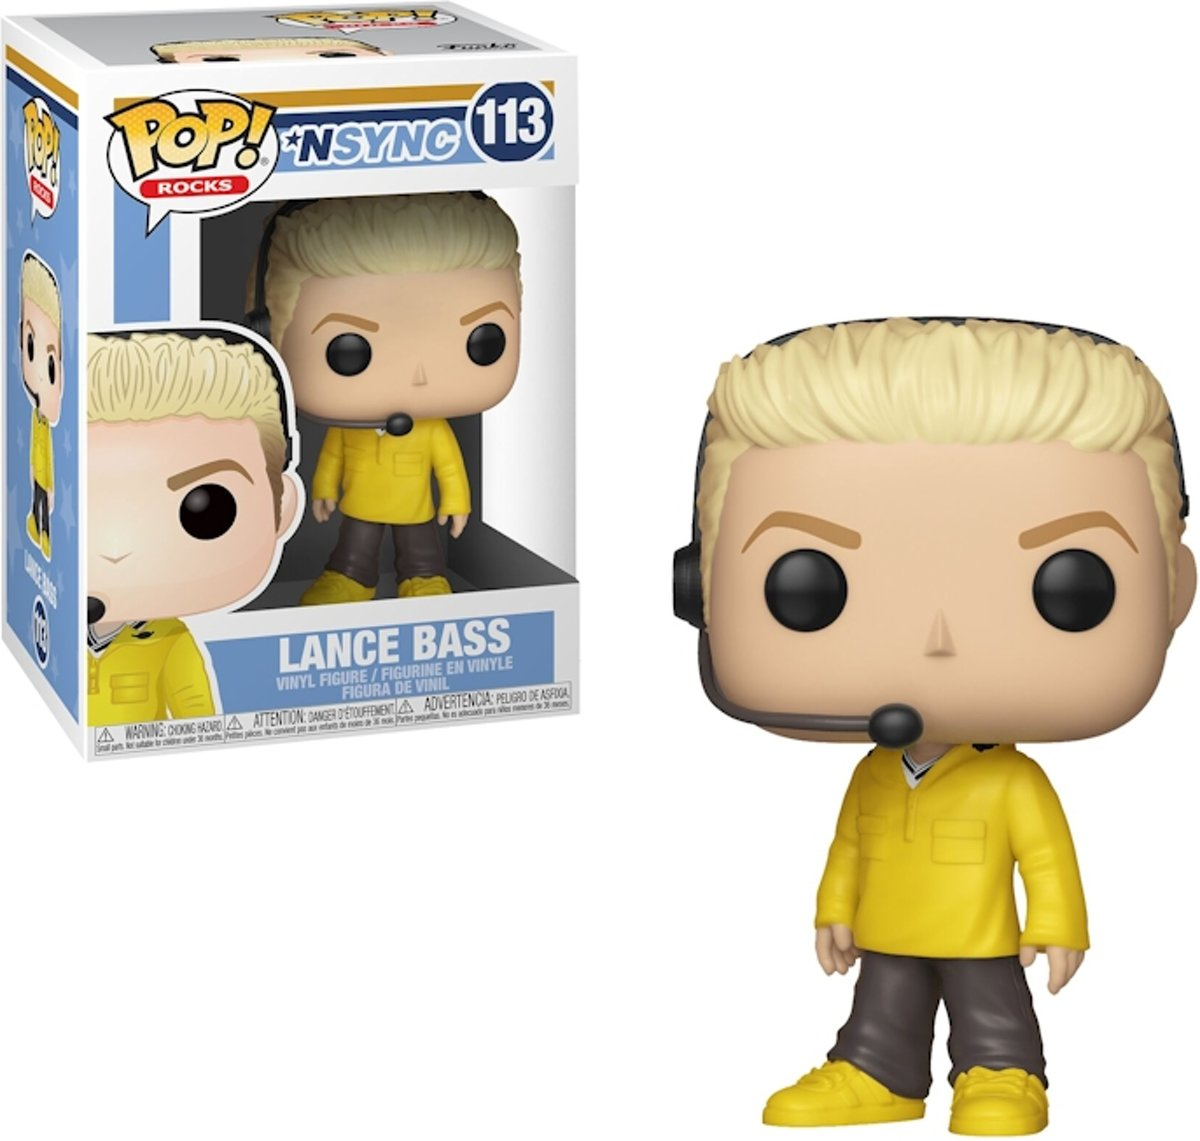 Pop Nsync Lance Bass Vinyl Figure